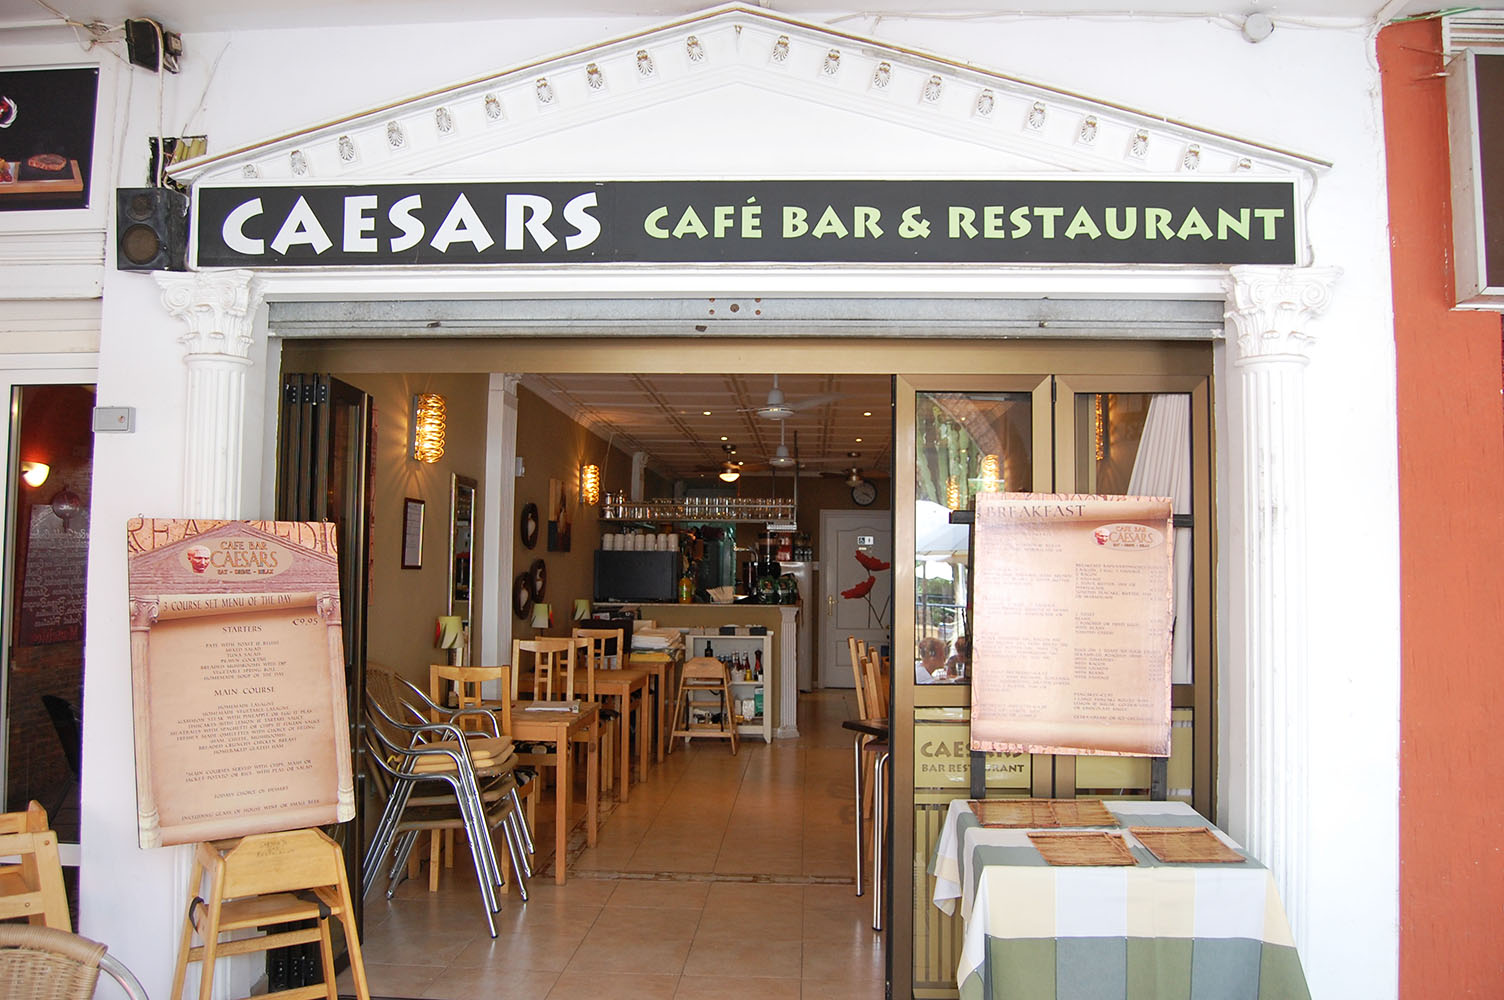 Caesar's Restaurant on Villamartin Plaza